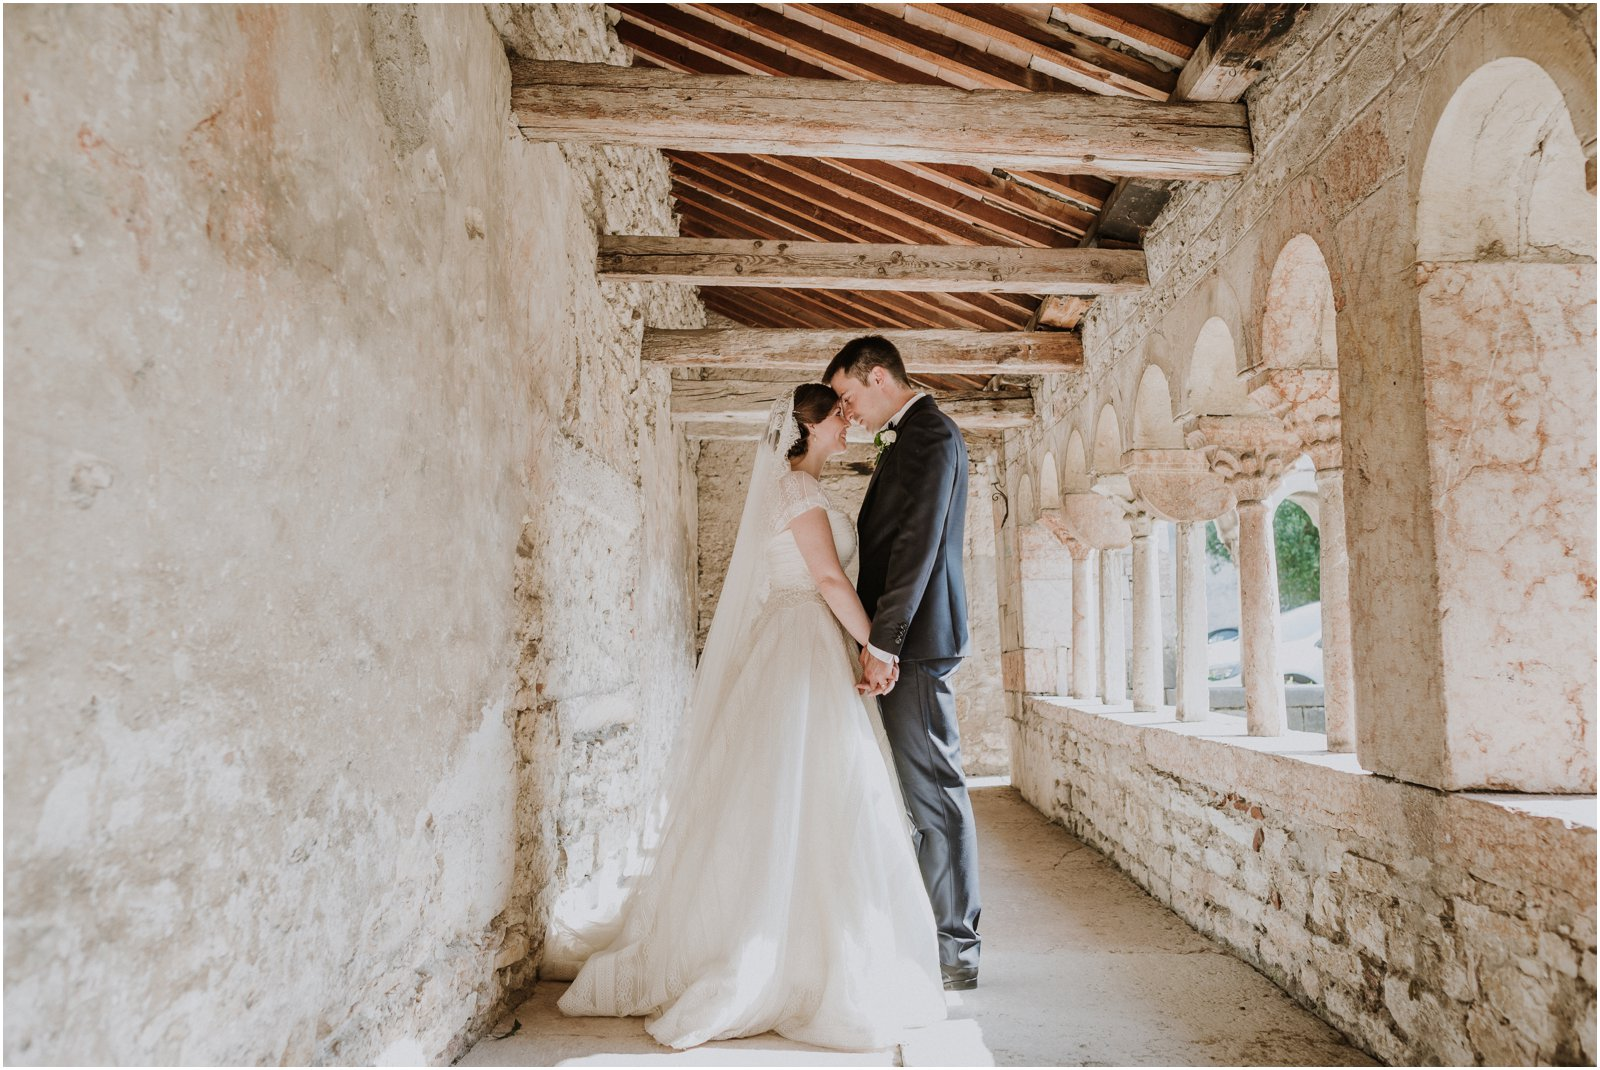 veronasposi foto e video matrimonio verona_0574